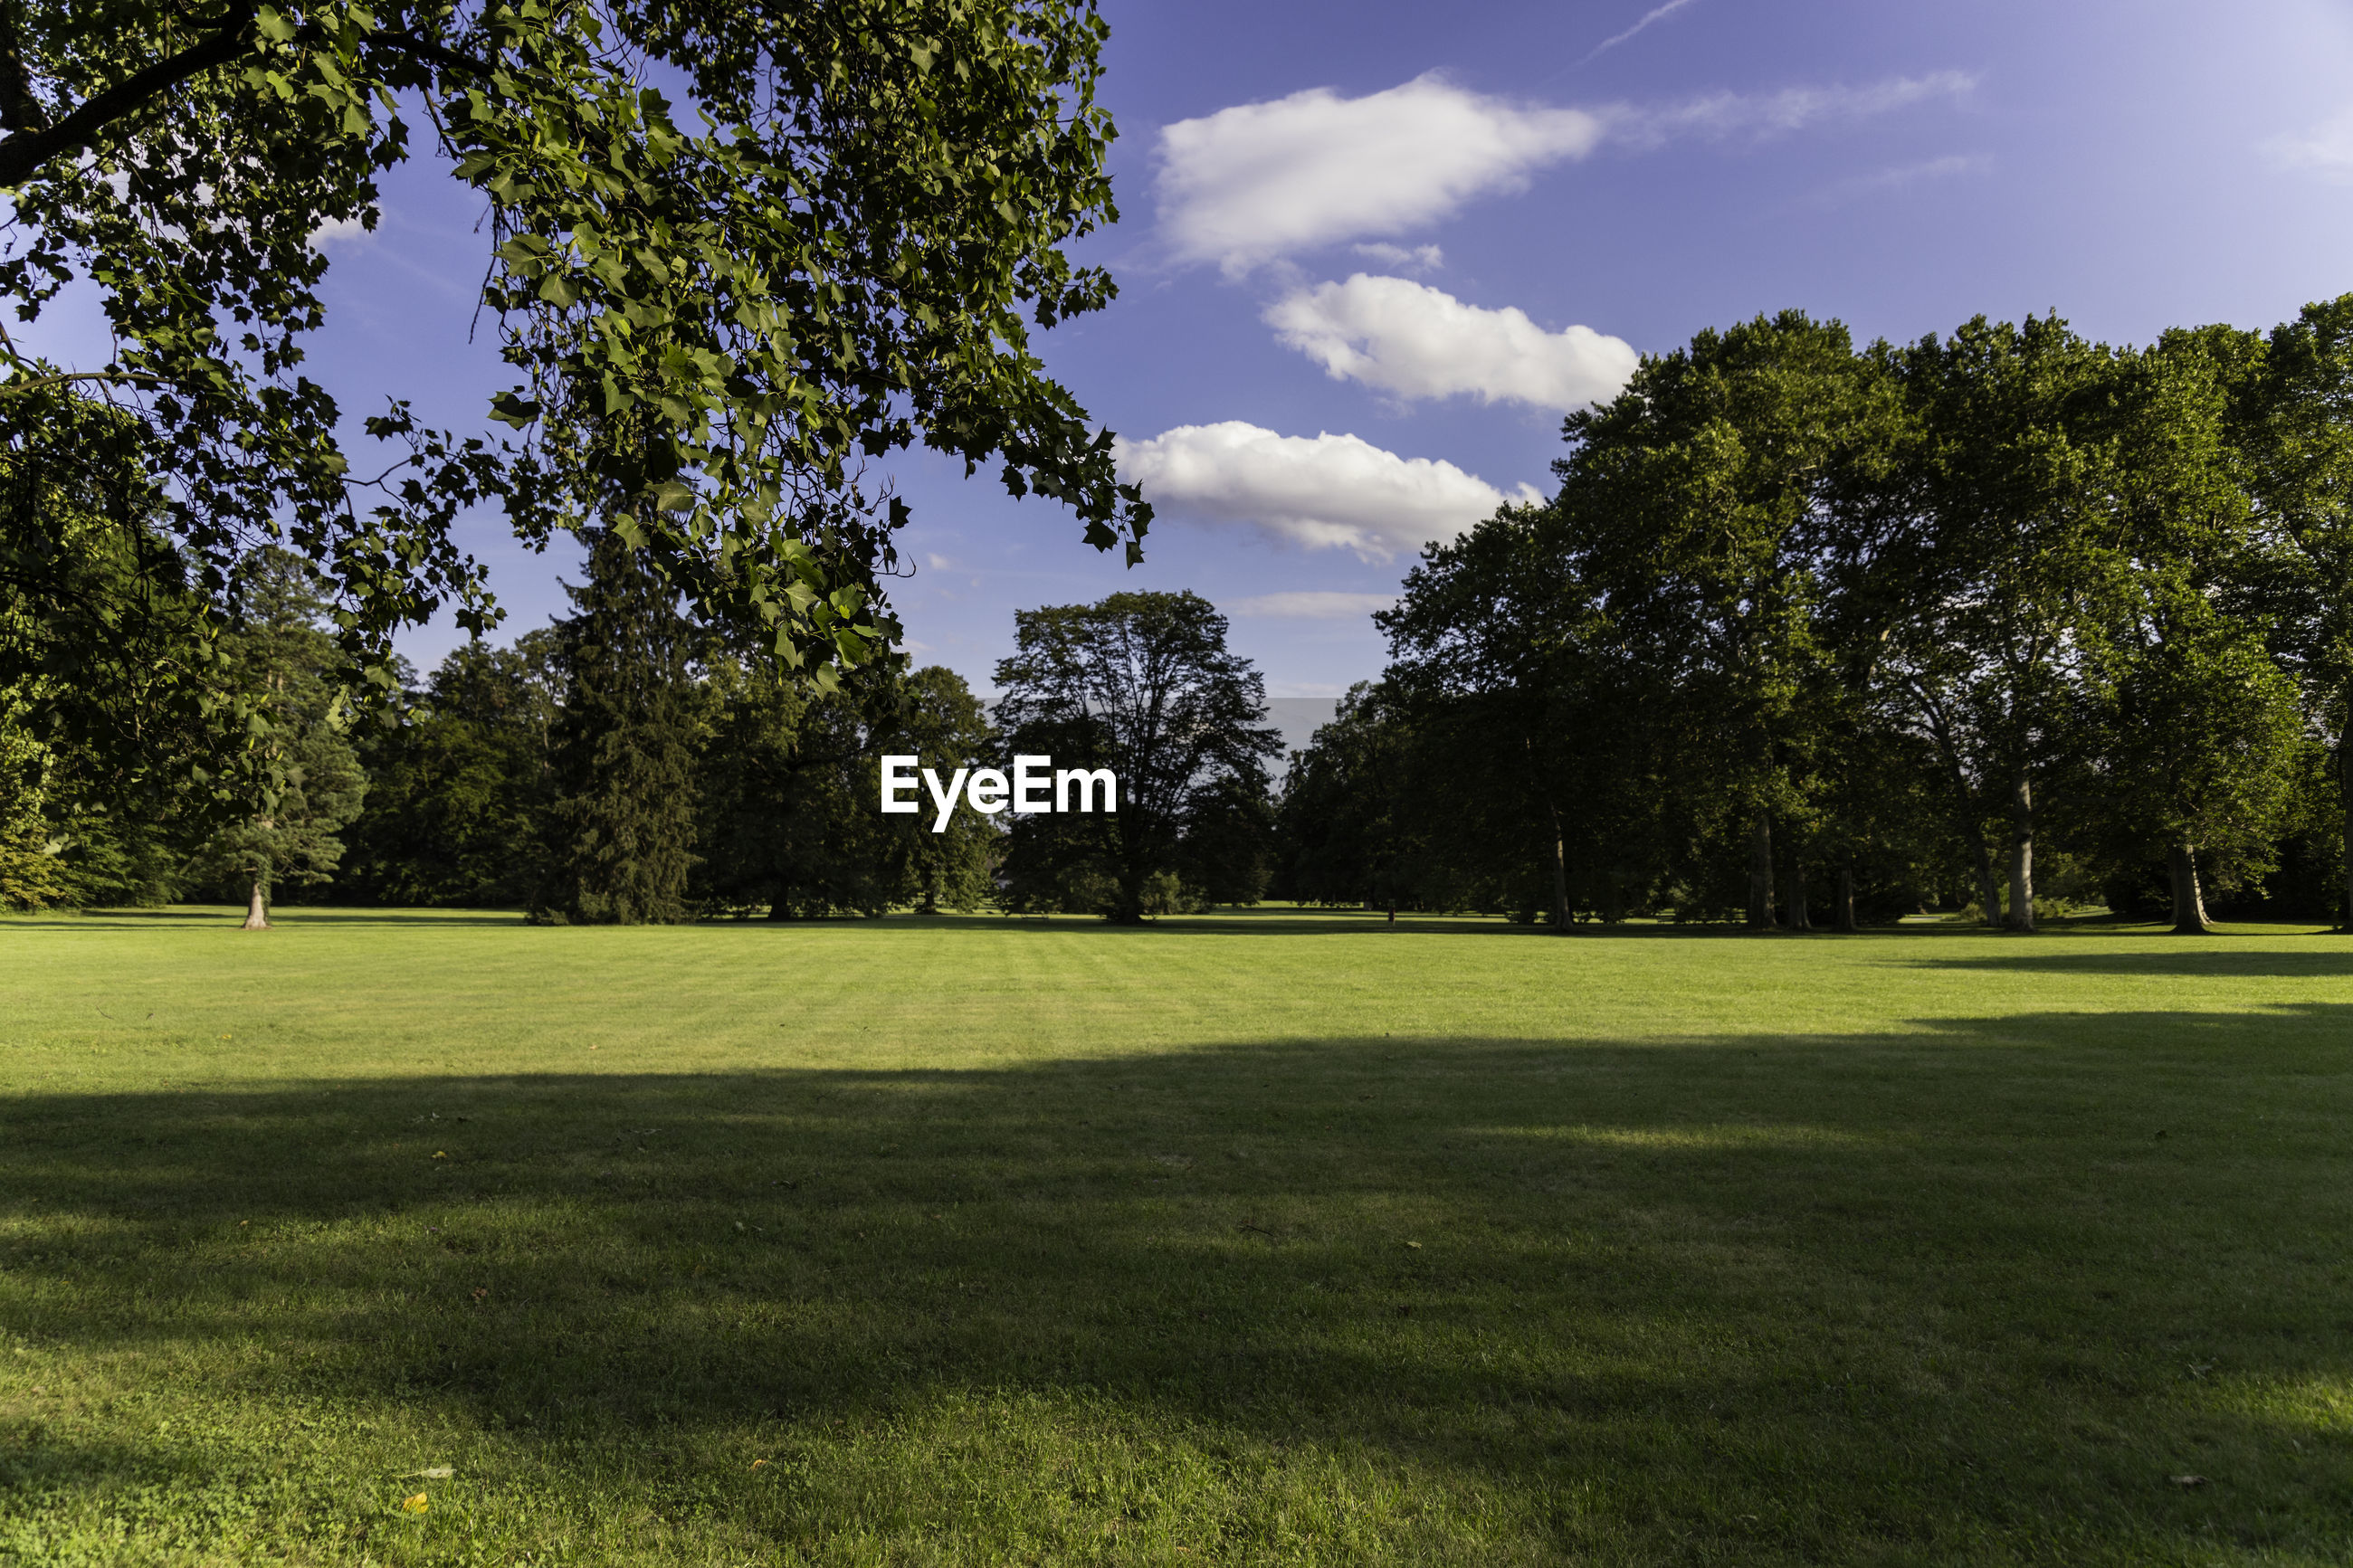 VIEW OF GOLF COURSE AGAINST TREES